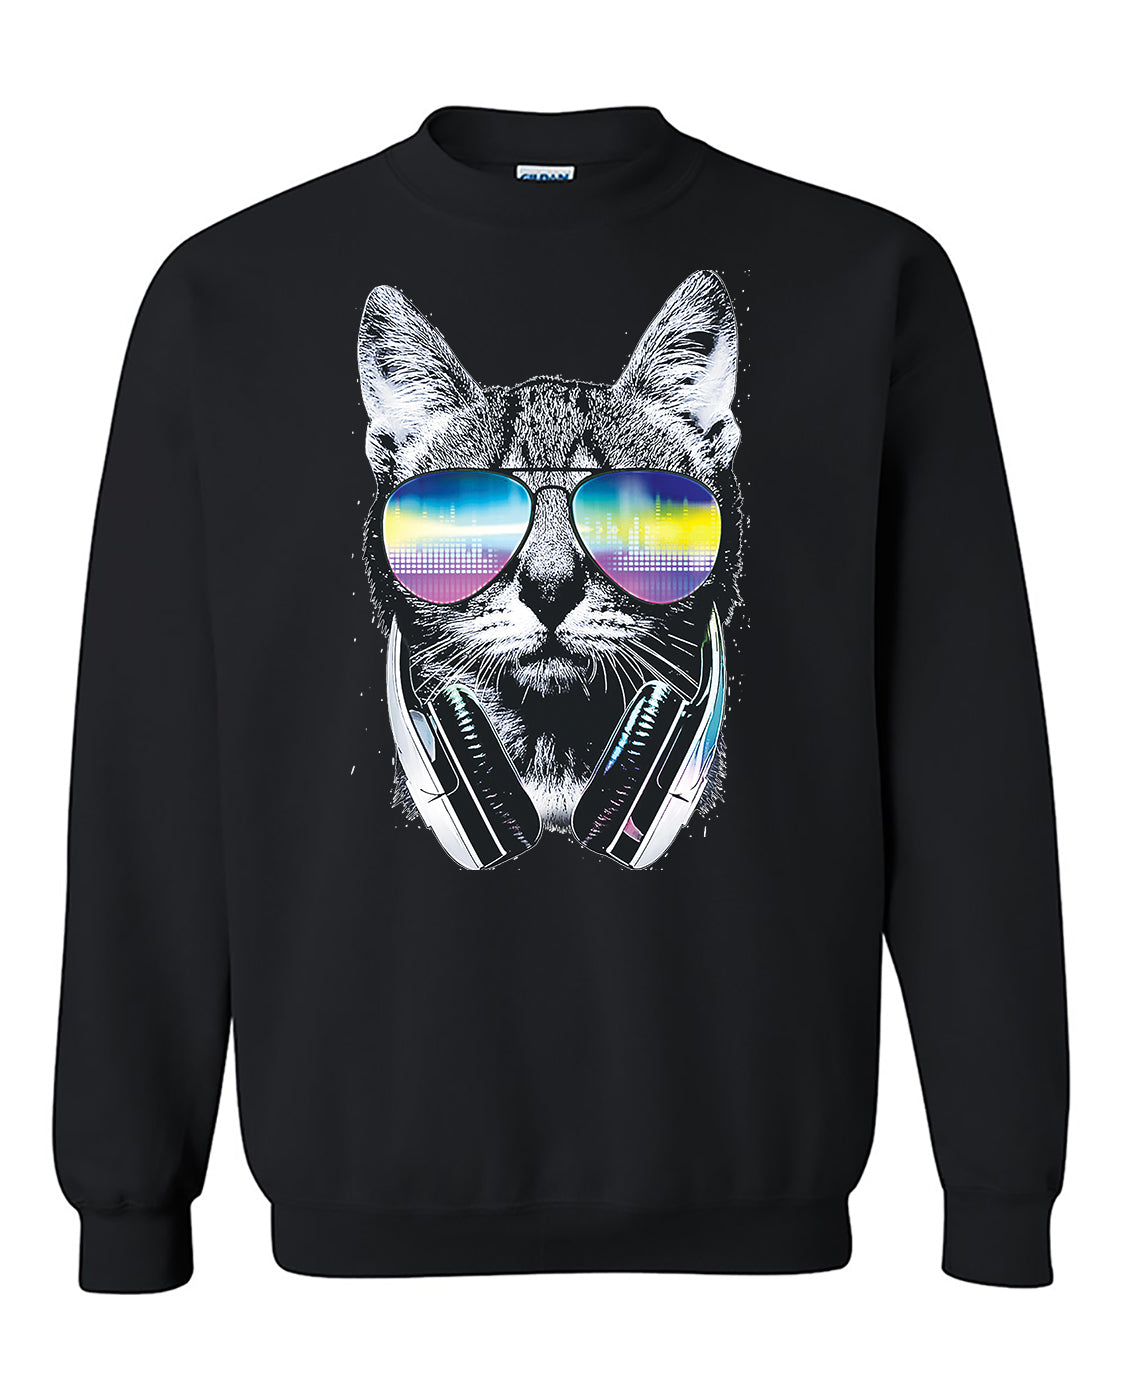 Cool Cat with Headphones and Sunglasses Animal Lover Crewneck Sweater